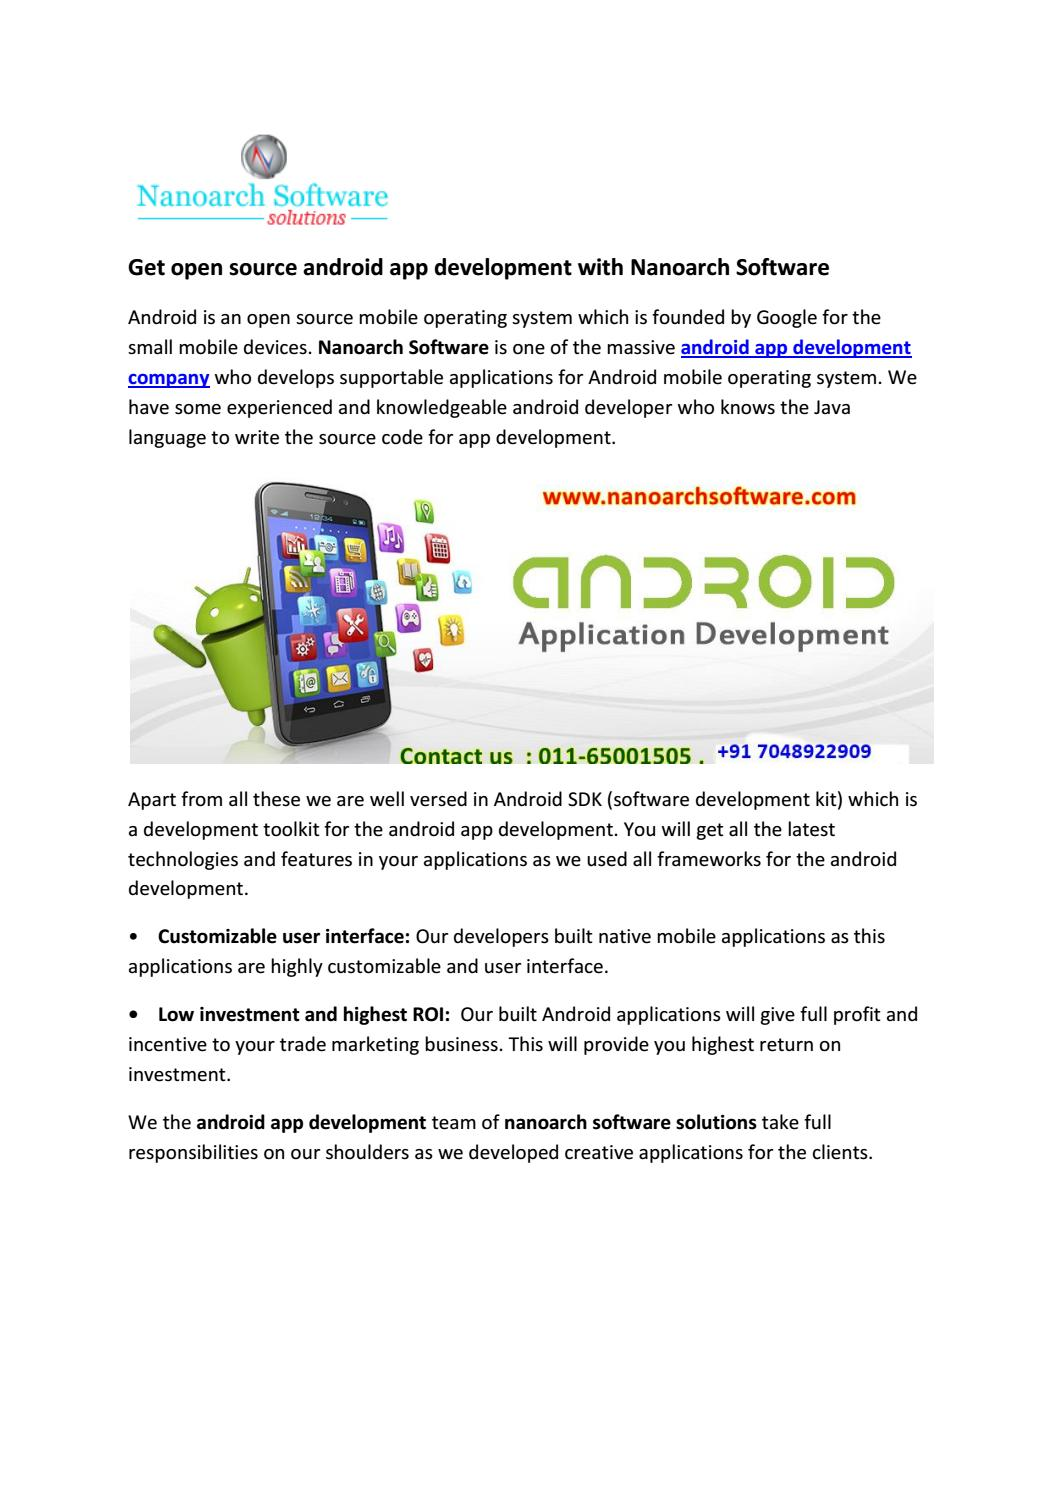 Get open source android app development with Nanoarch